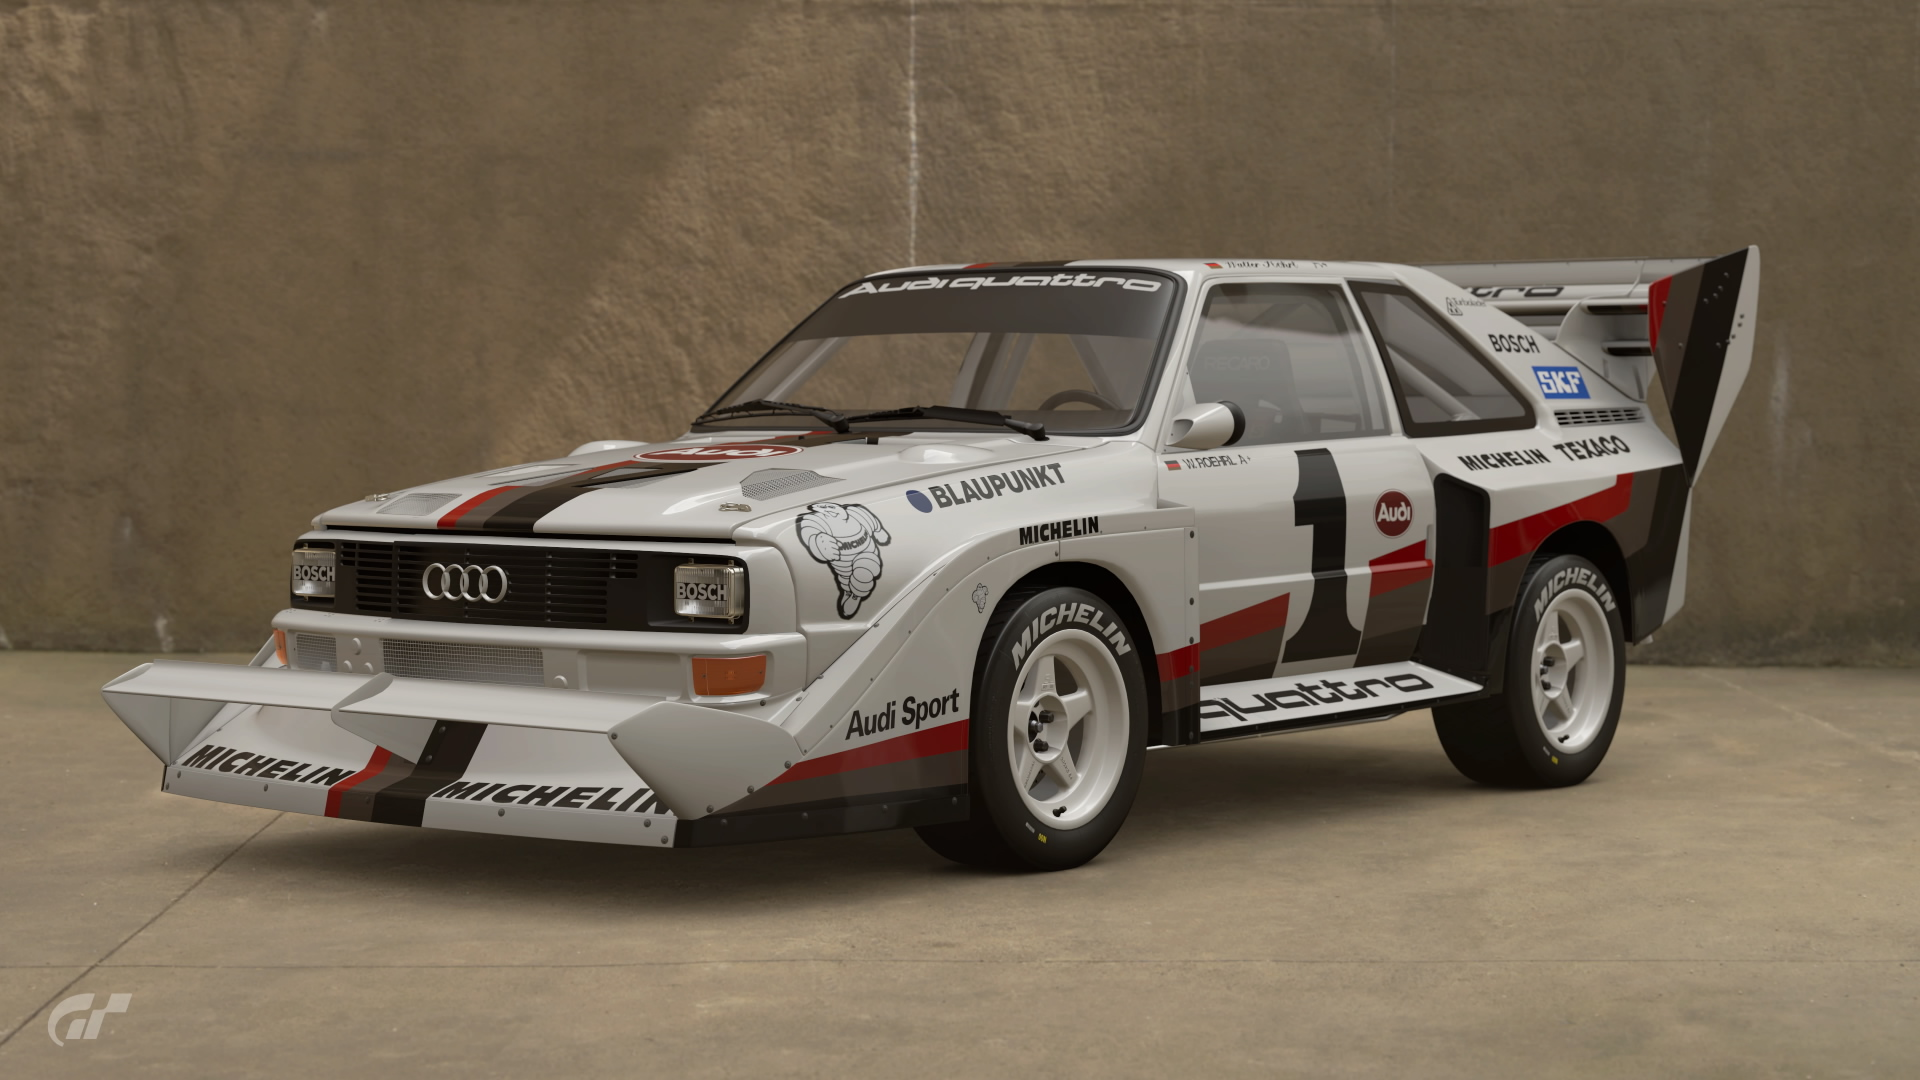 audi sport quattro s1 pikes peak 39 87 gran turismo wiki fandom powered by wikia. Black Bedroom Furniture Sets. Home Design Ideas